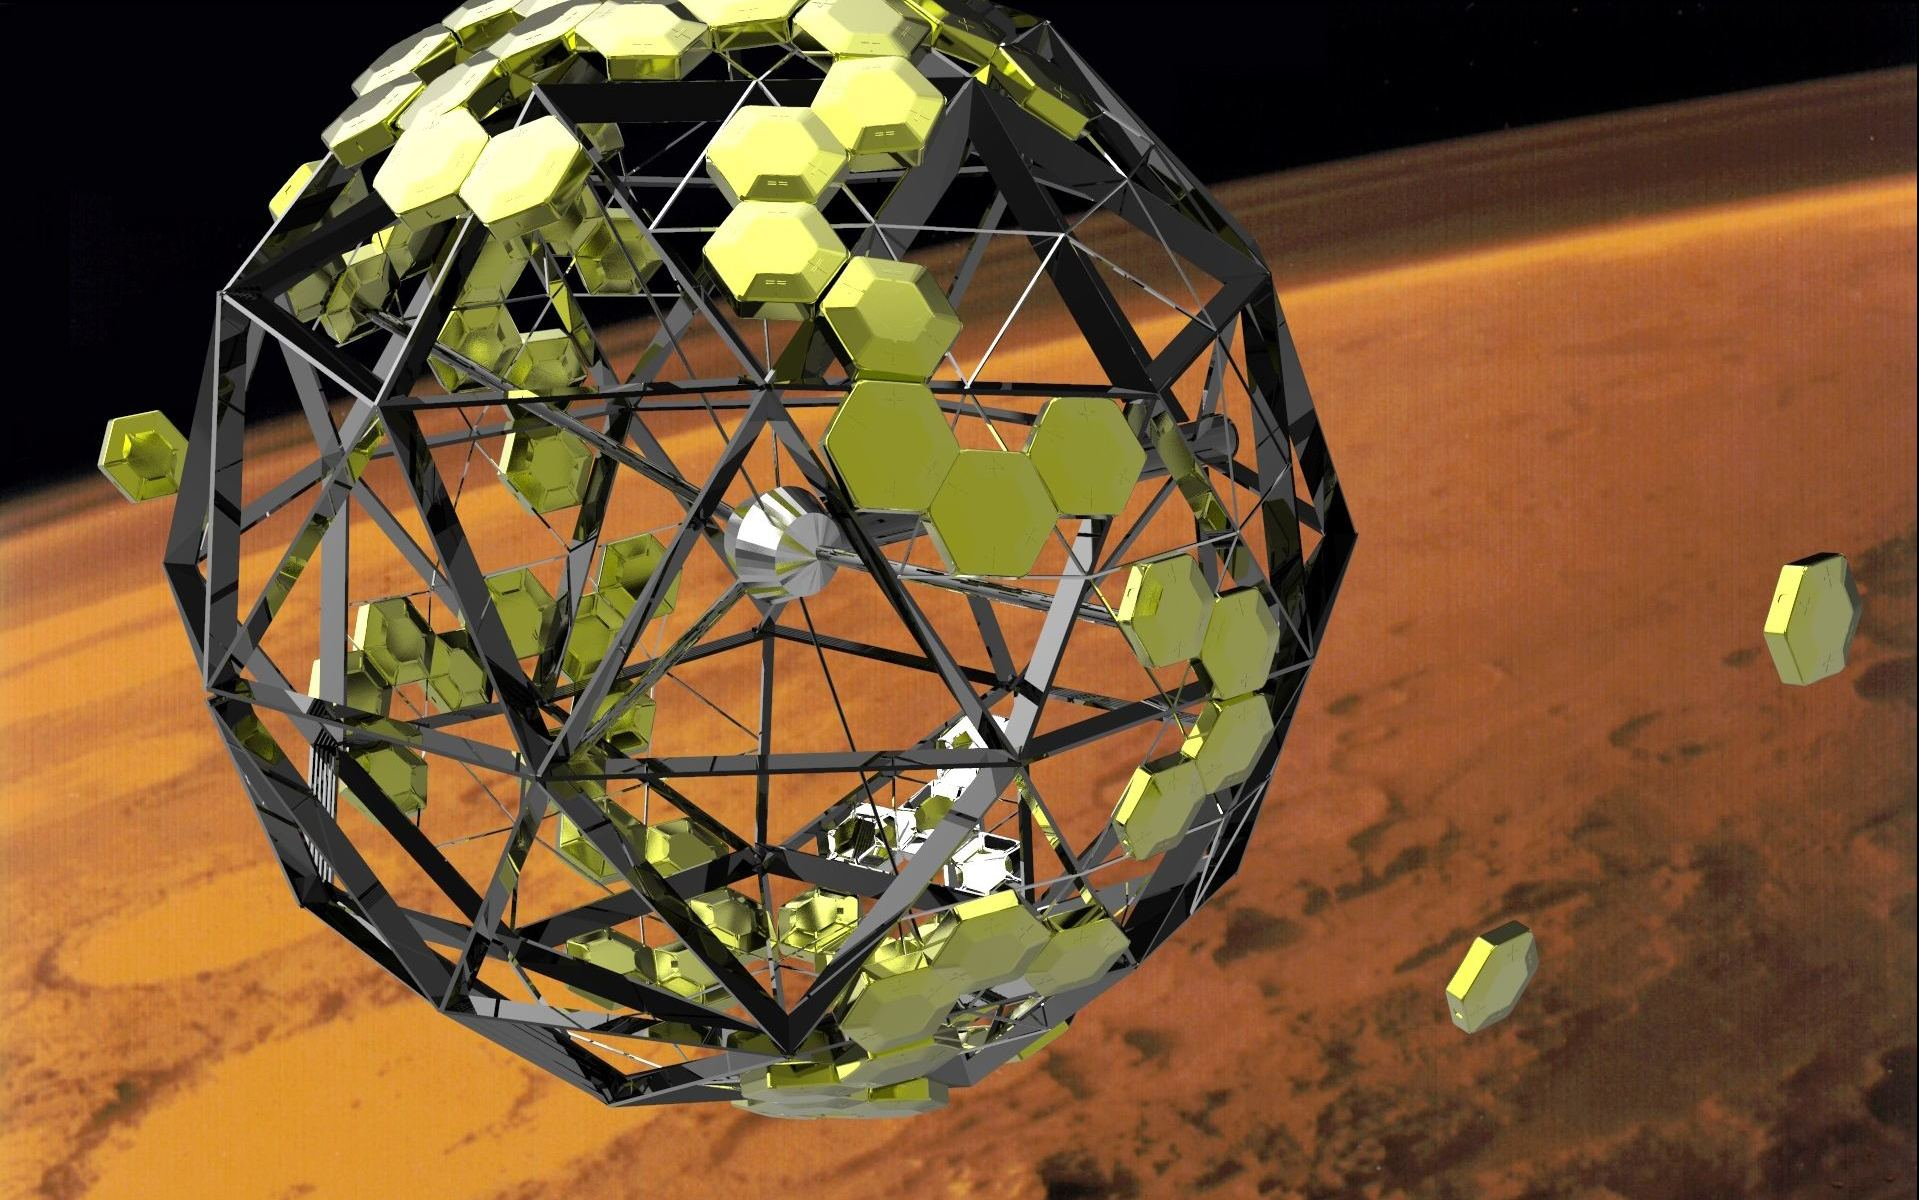 Plans For A Modular Martian Base That Would Provide Its